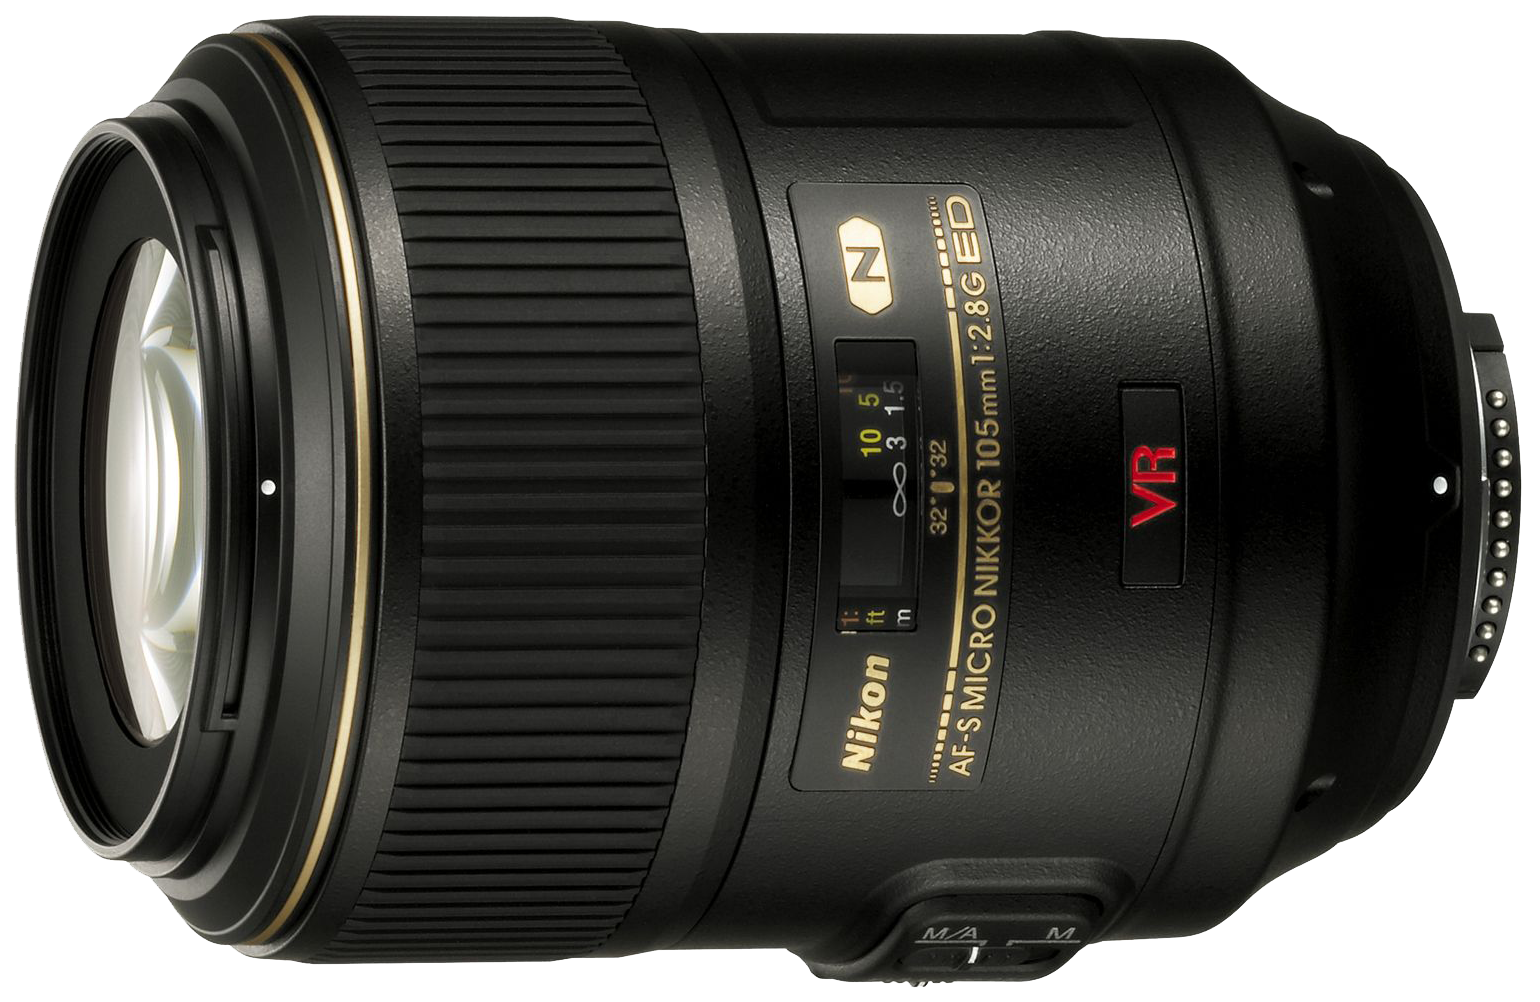 Nikon 105mm f/2.8G AF-S VR Micro IF-ED – 60 RON